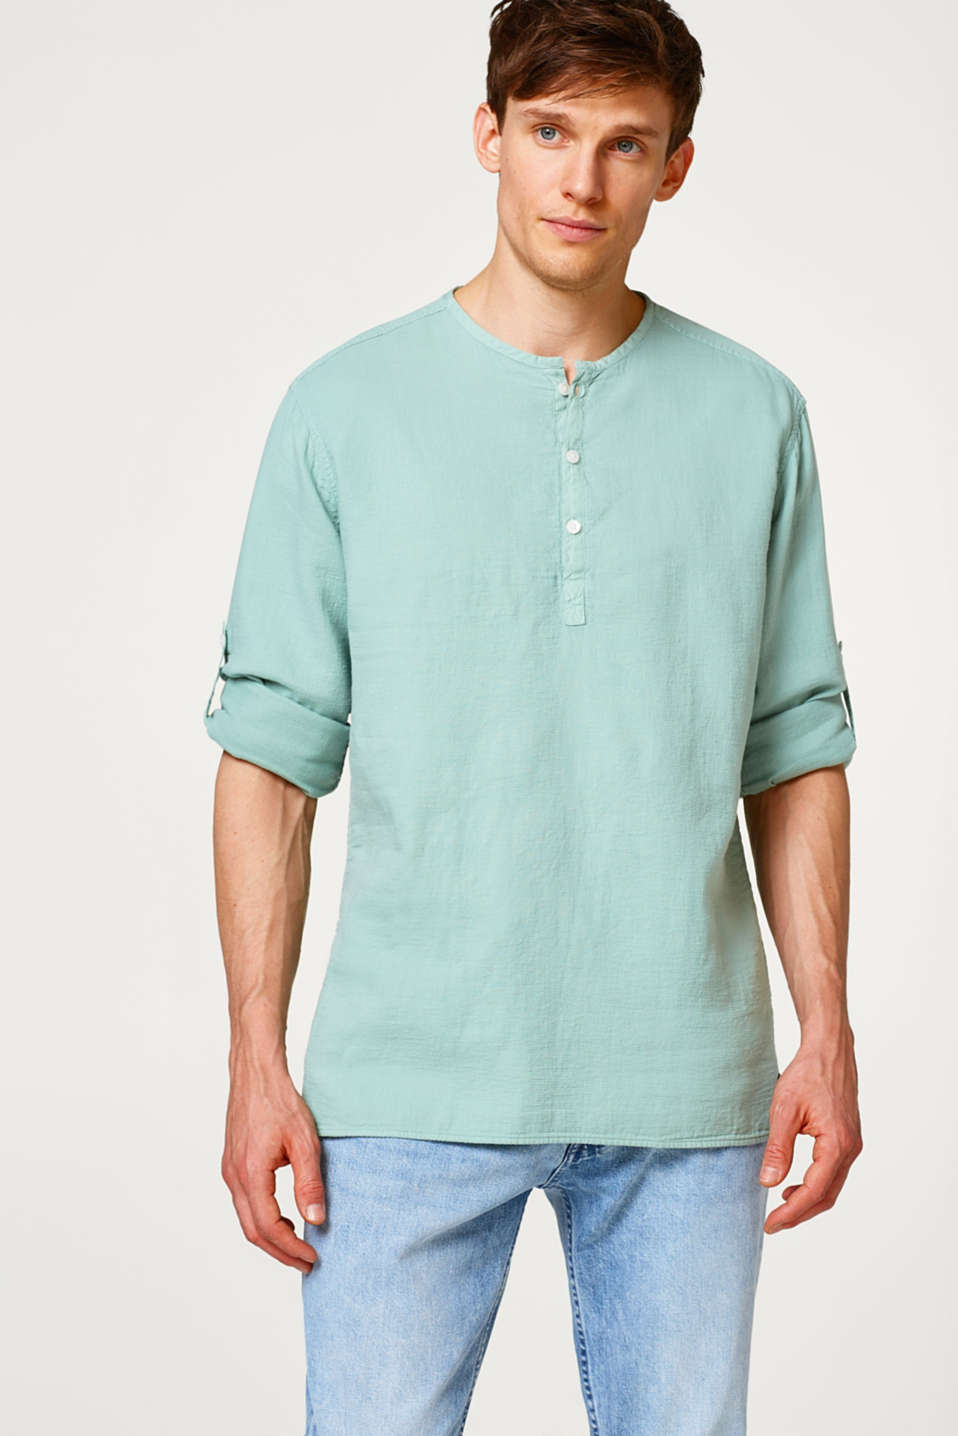 Esprit - Shirt with a Henley neckline, made of cotton